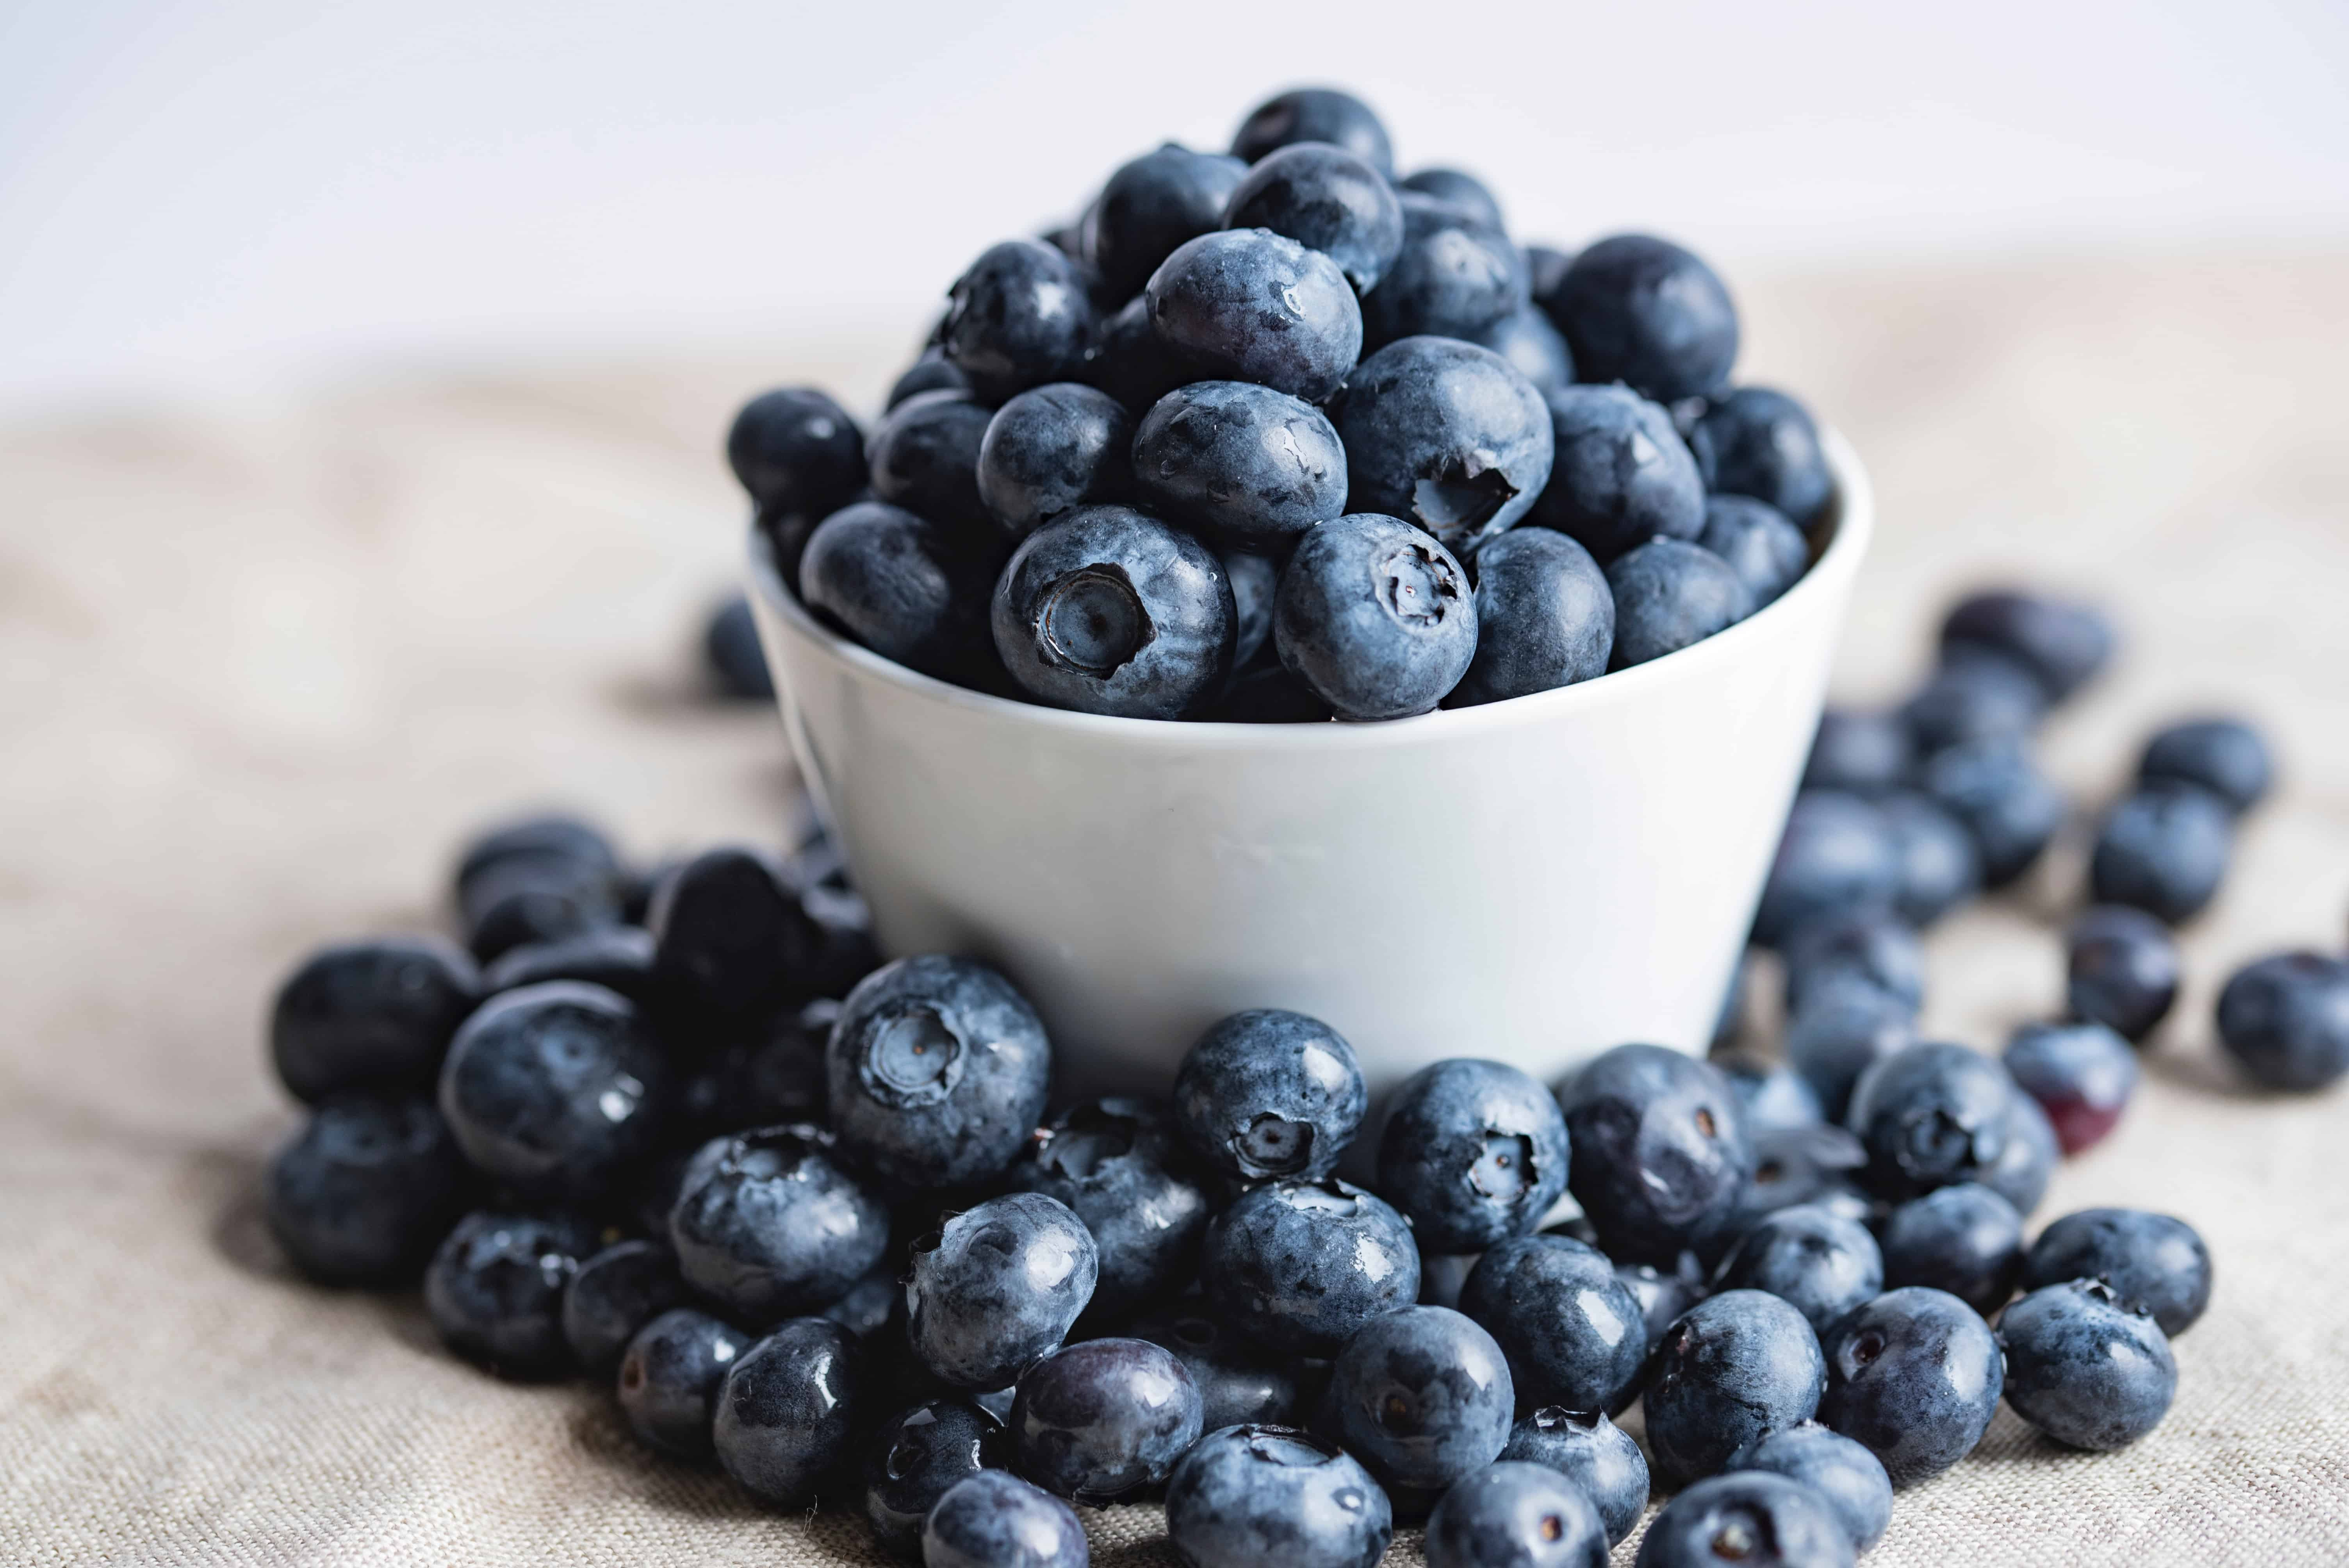 blueberries in a bowl, food facts